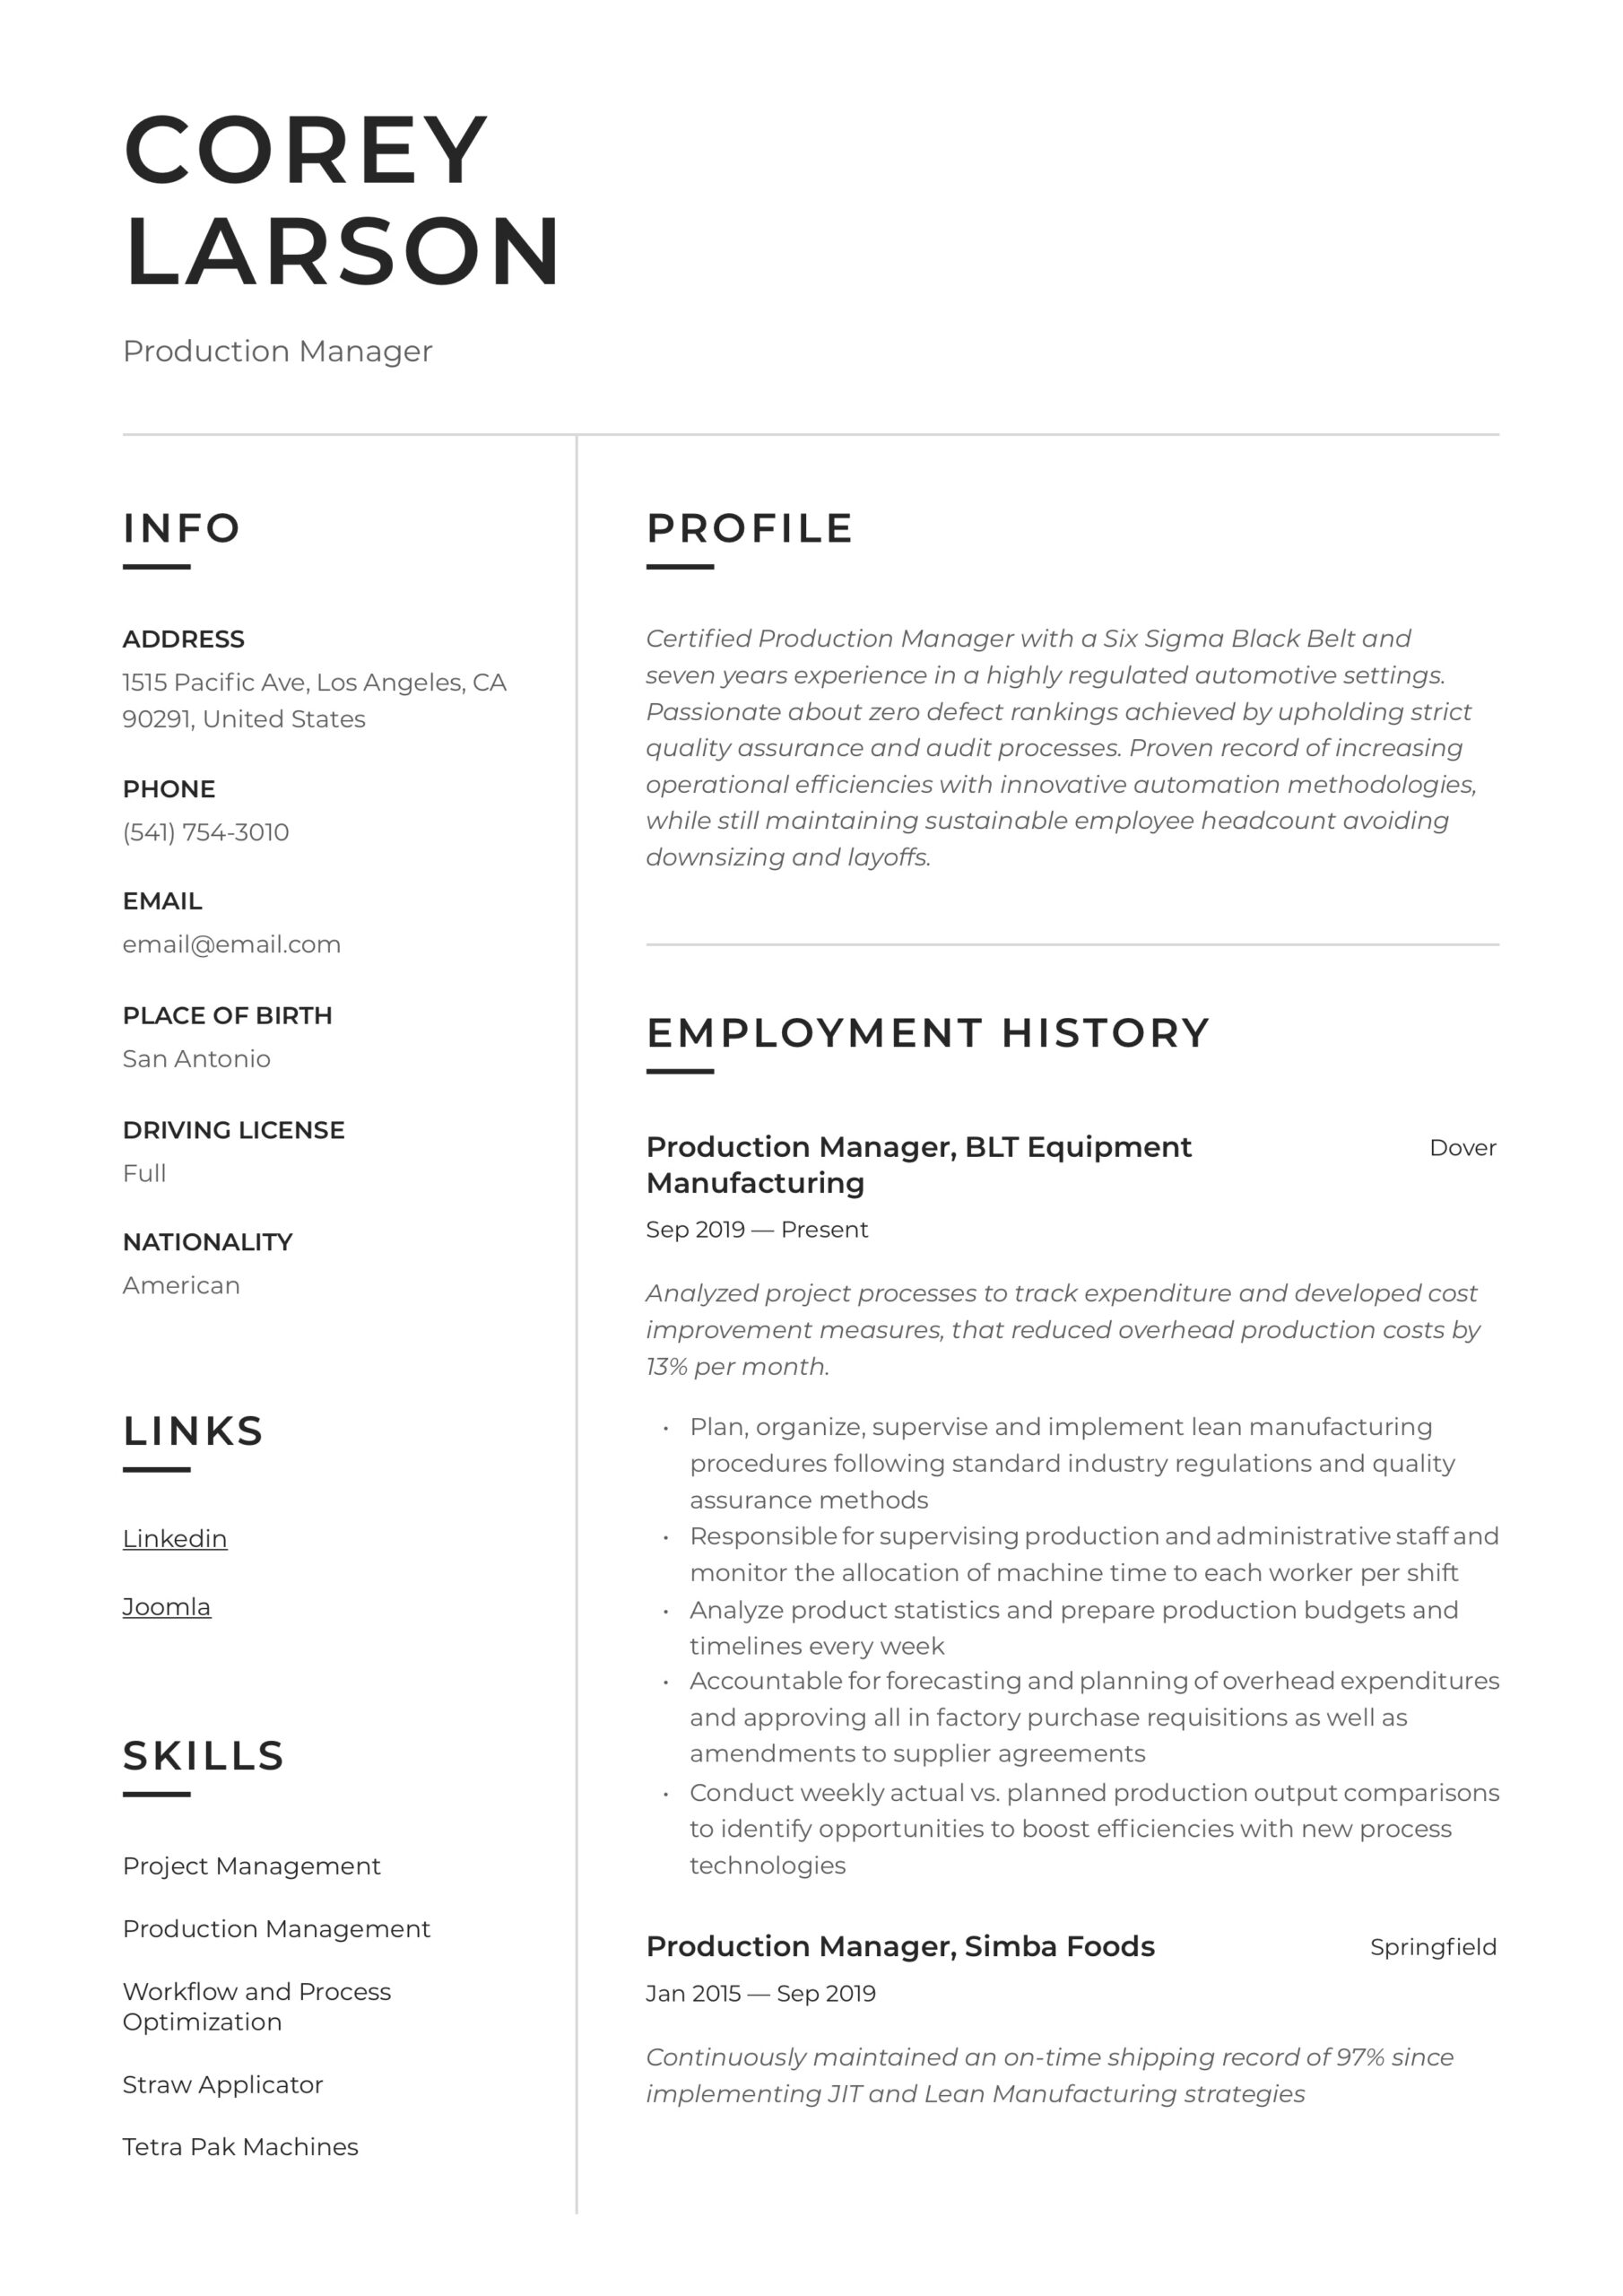 production manager resume writing guide templates sample for apartment maintenance Resume Production Manager Resume